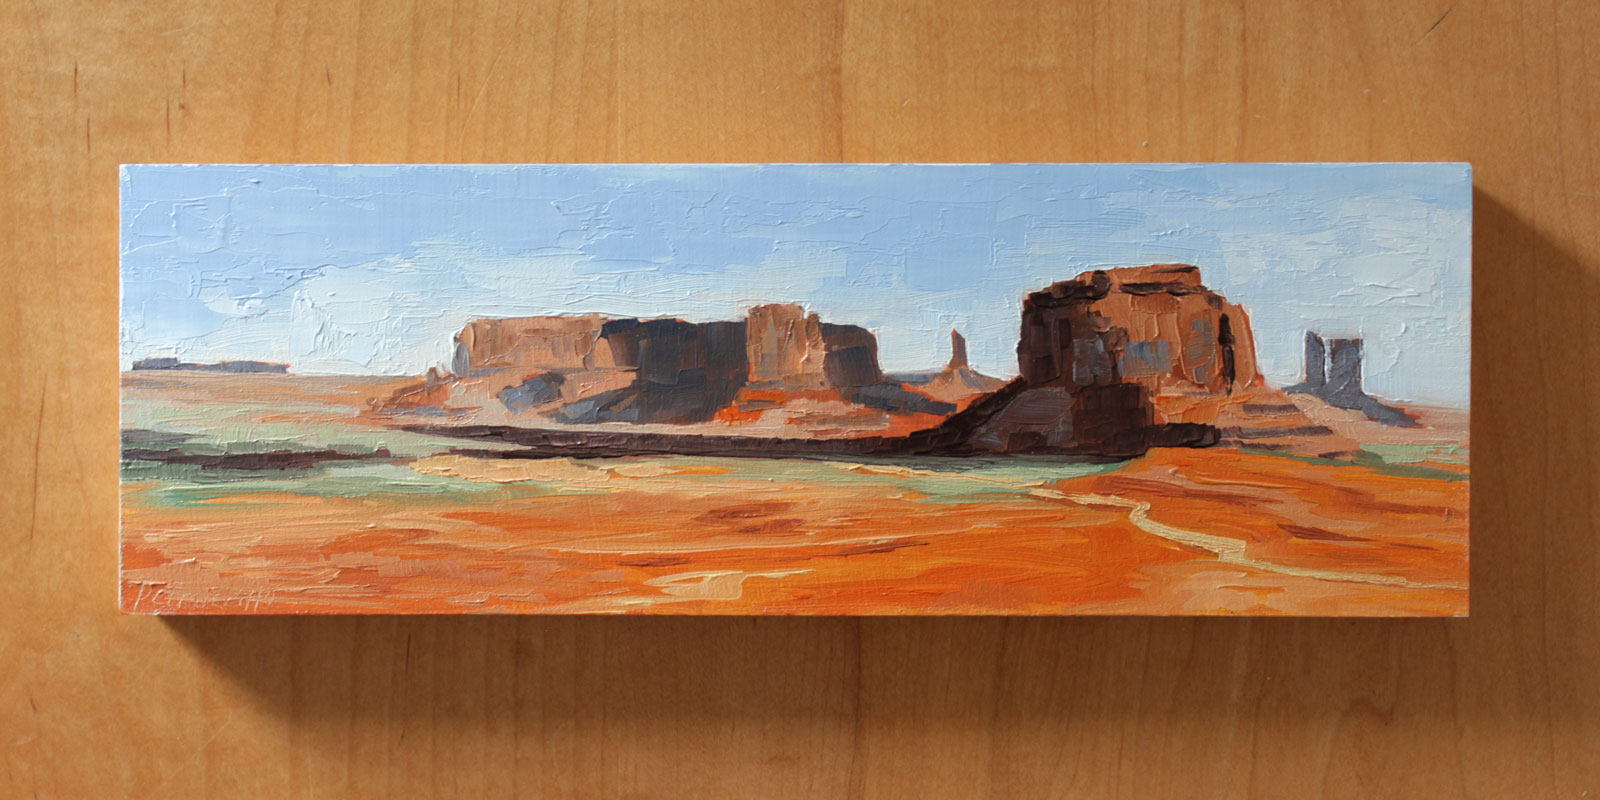 oil painting of monument valley in a red sand desert, navajo nation, arizona-utah